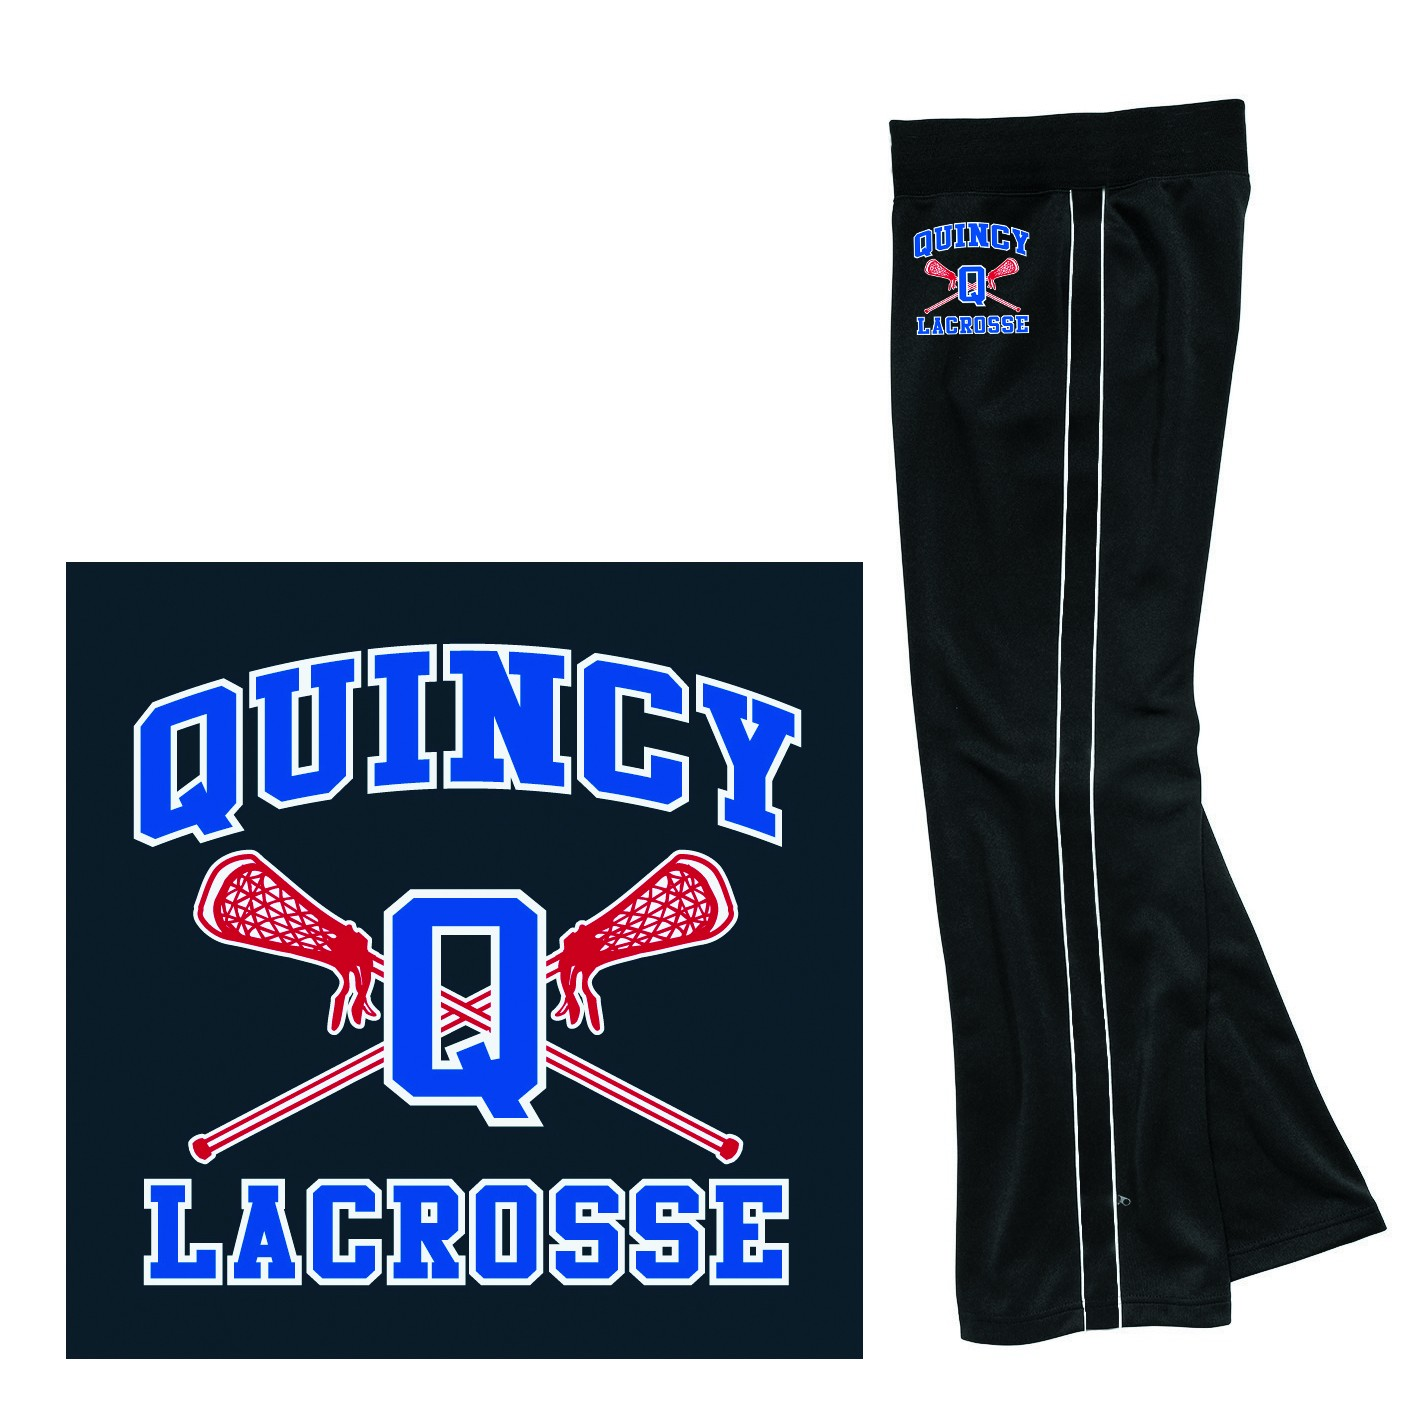 Quincy Lacrosse Charles River Women's Olympian Pant 5985